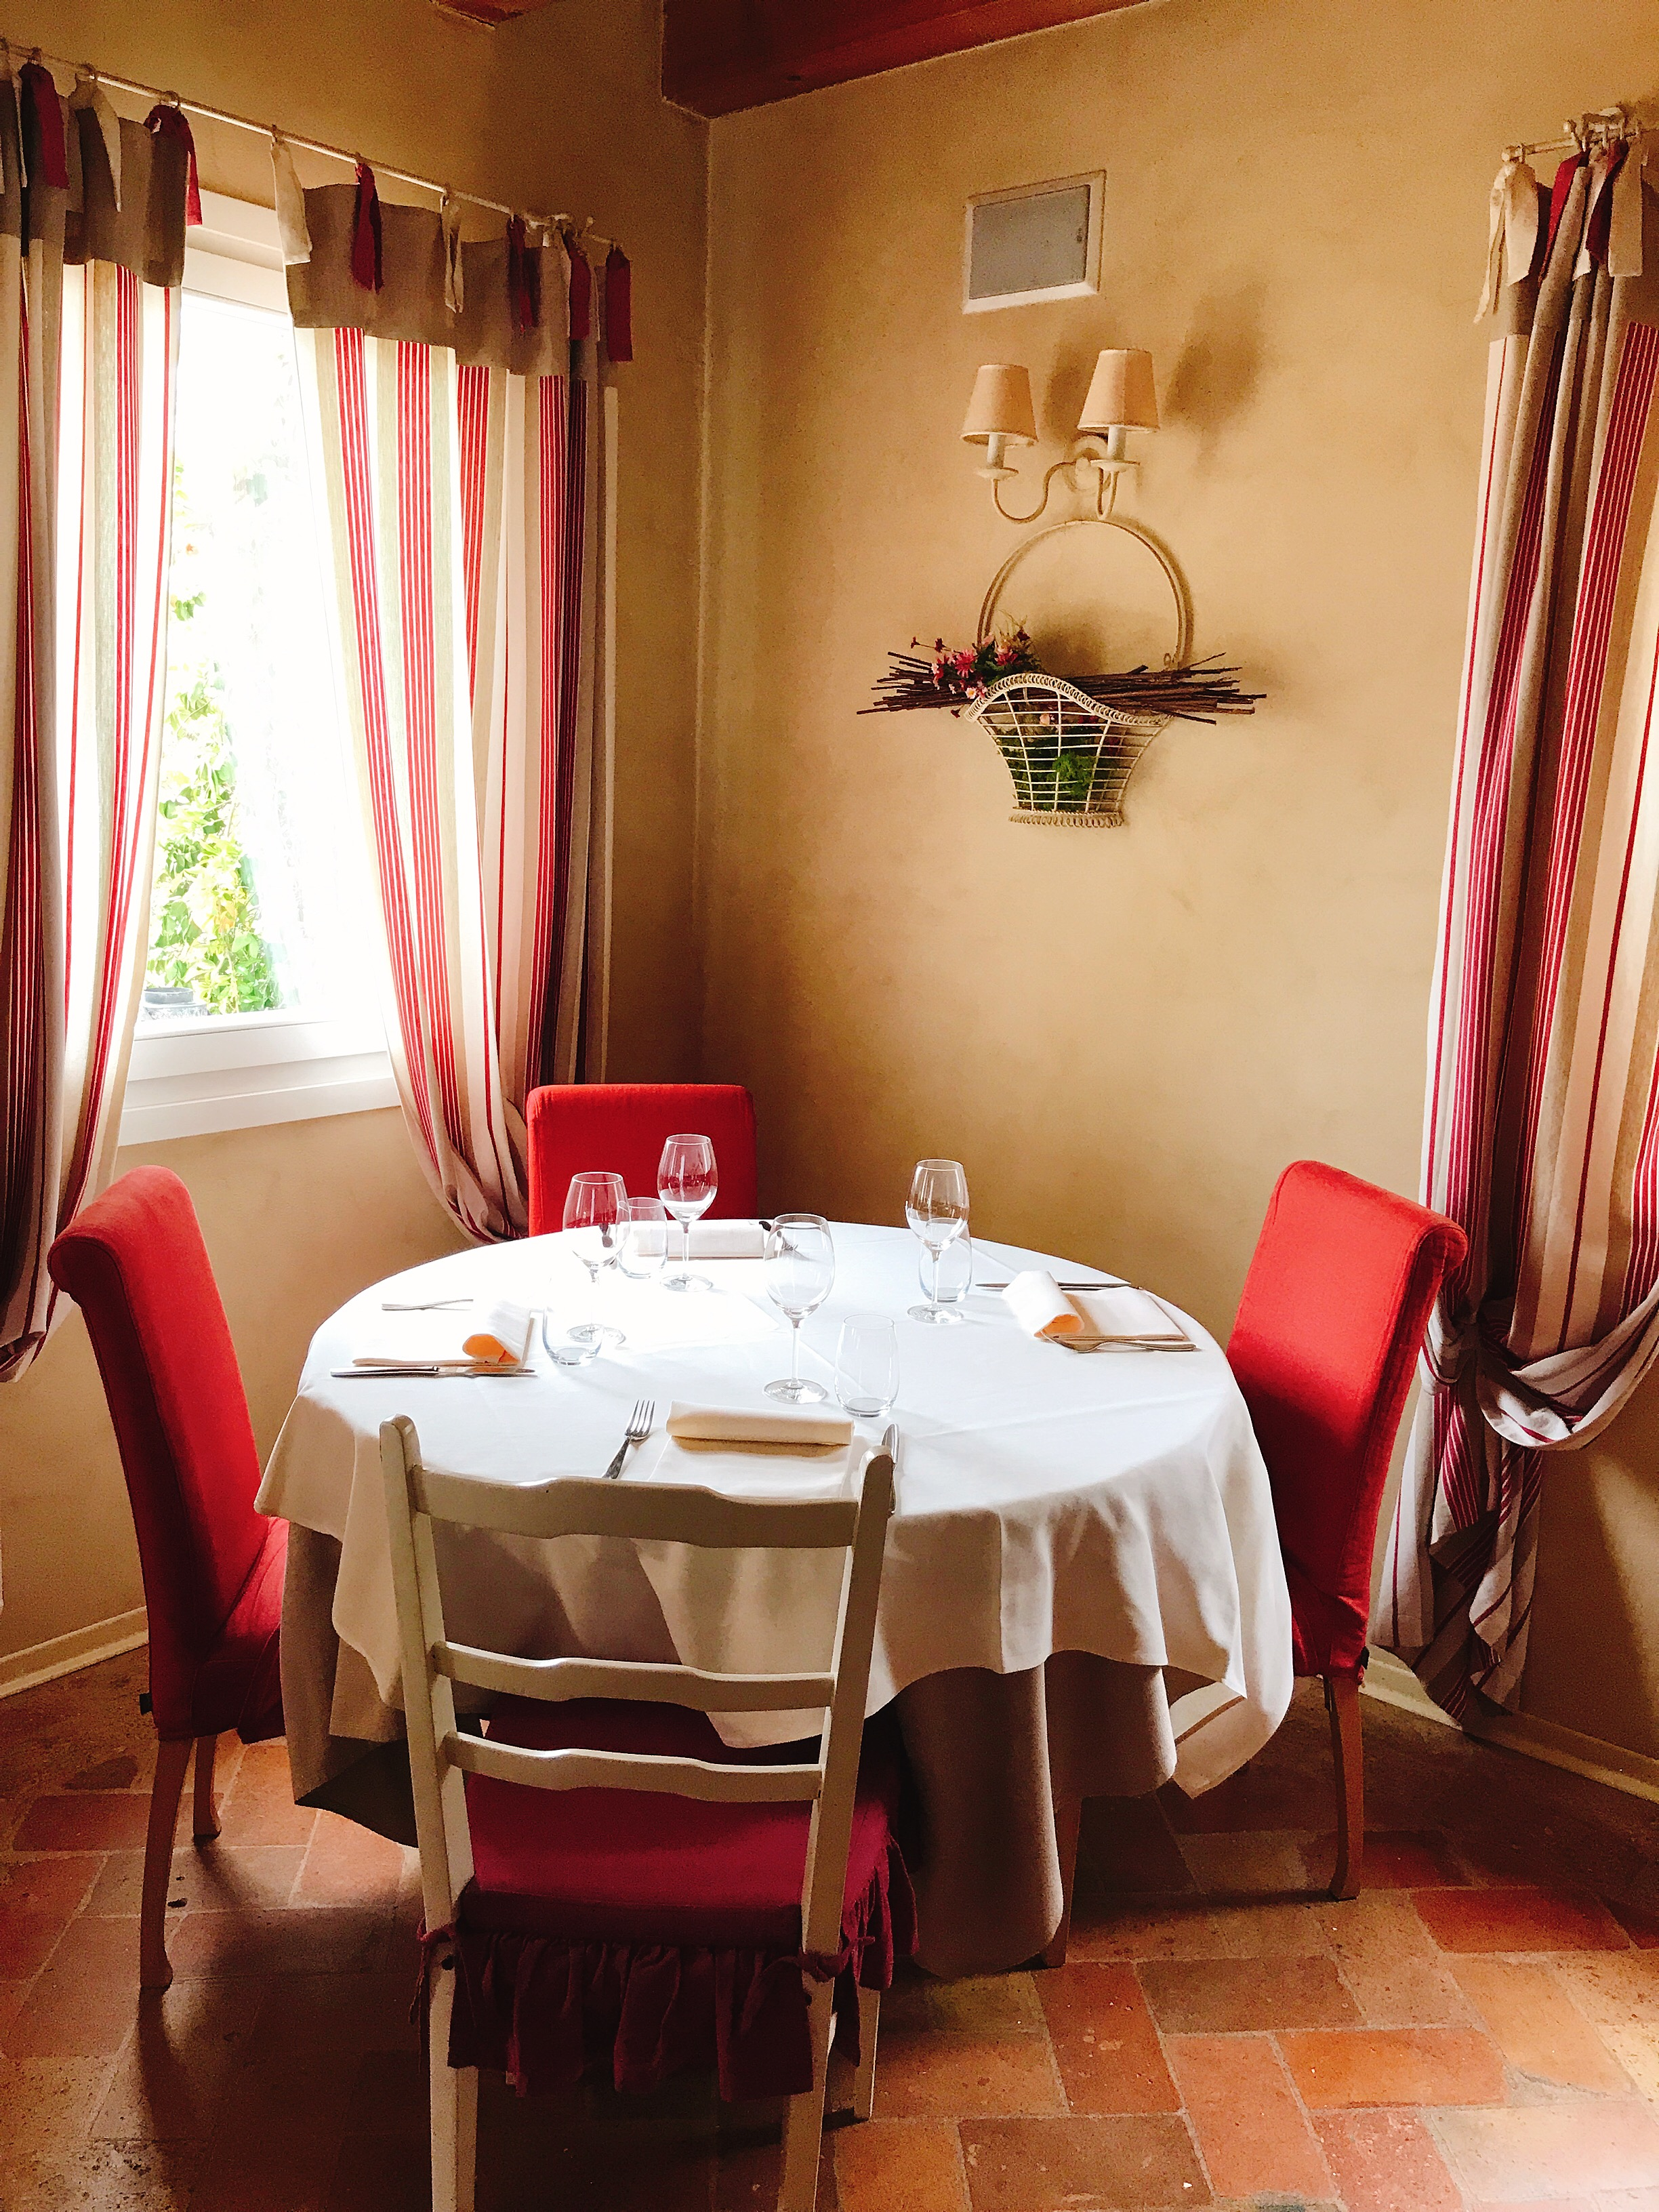 Locanda Marinelli: How cozy is this little table?